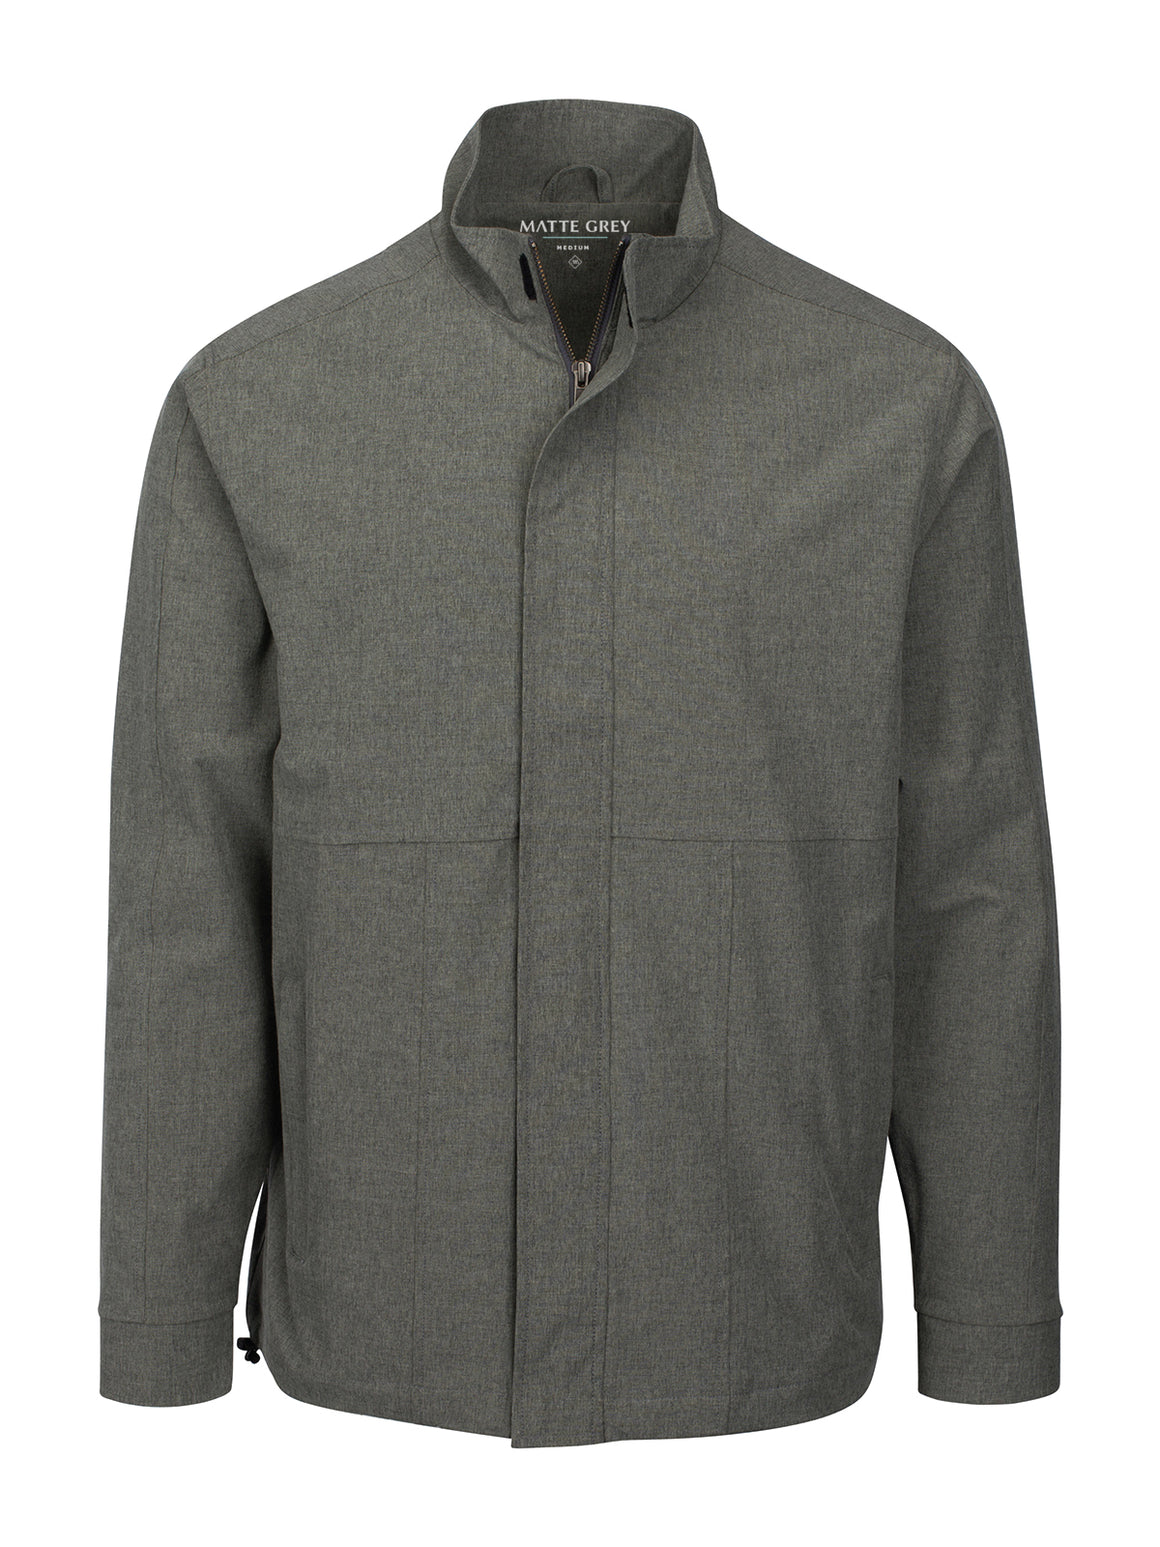 Traveler Jacket - Dark Grey